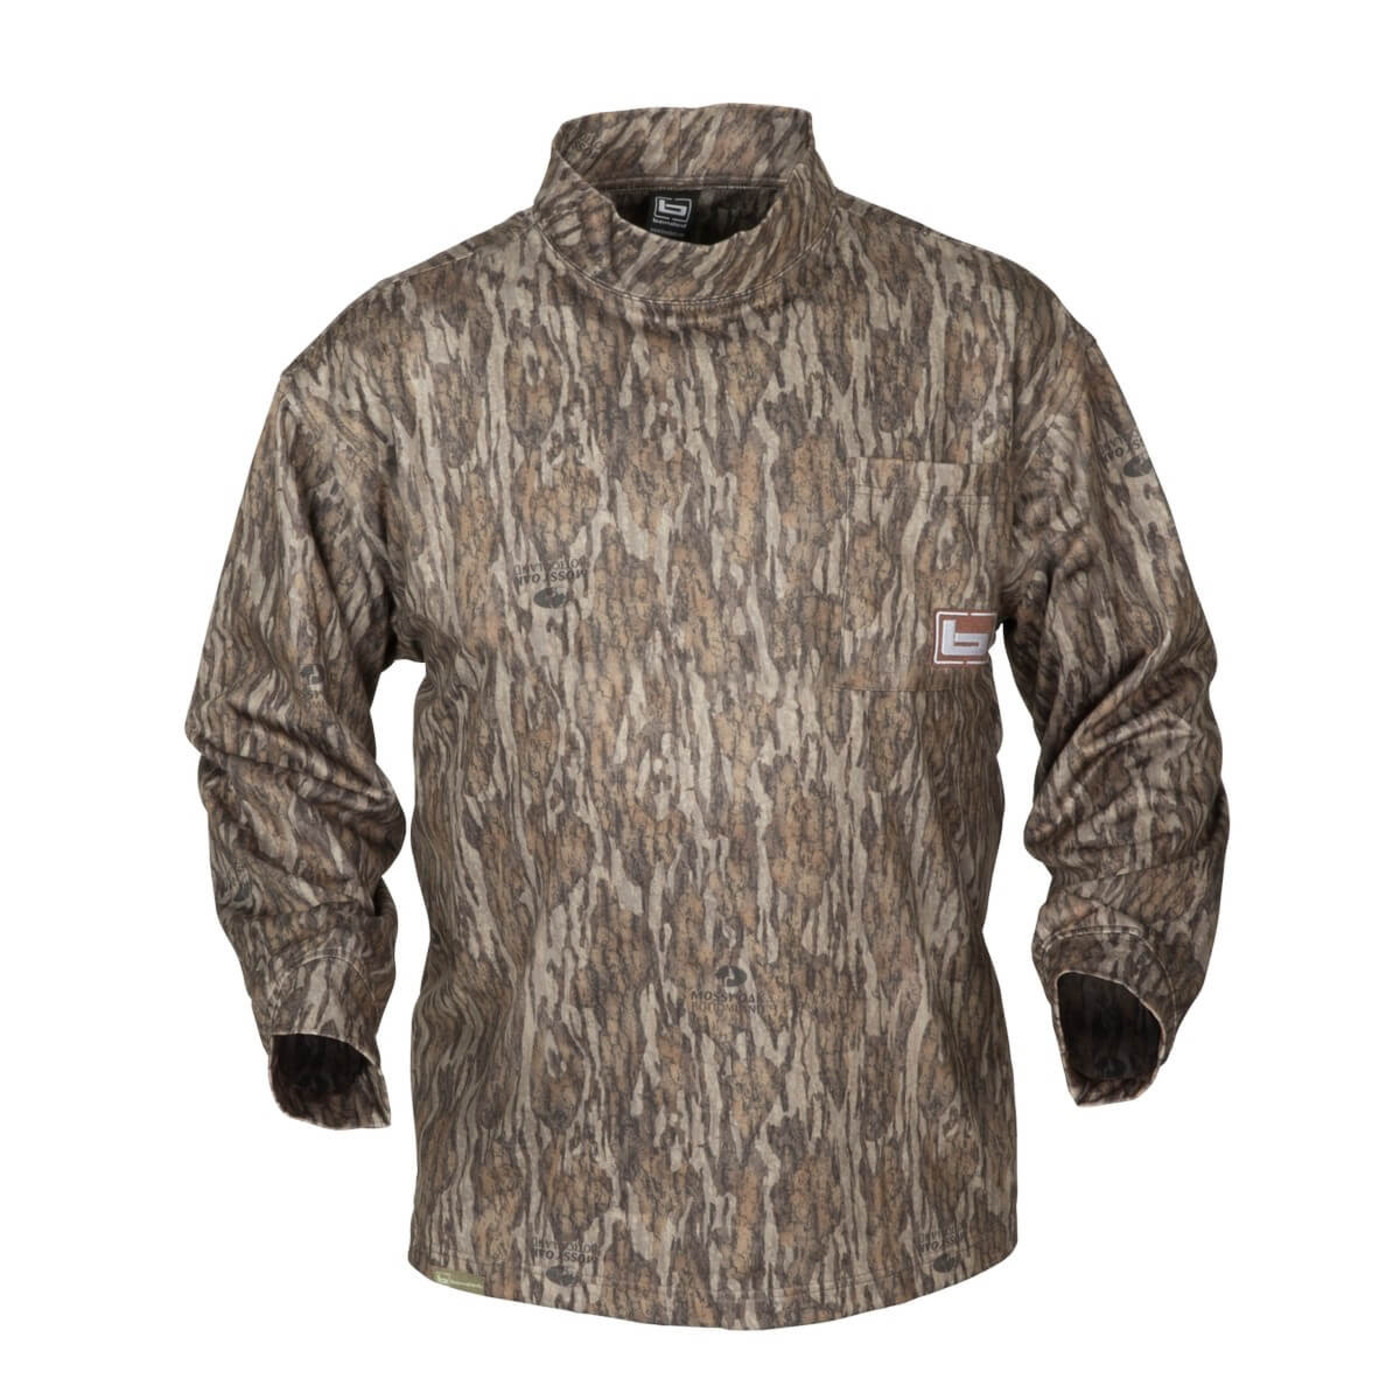 Banded Tec Fleece Mock Neck Shirt in Mossy Oak Bottomland Color